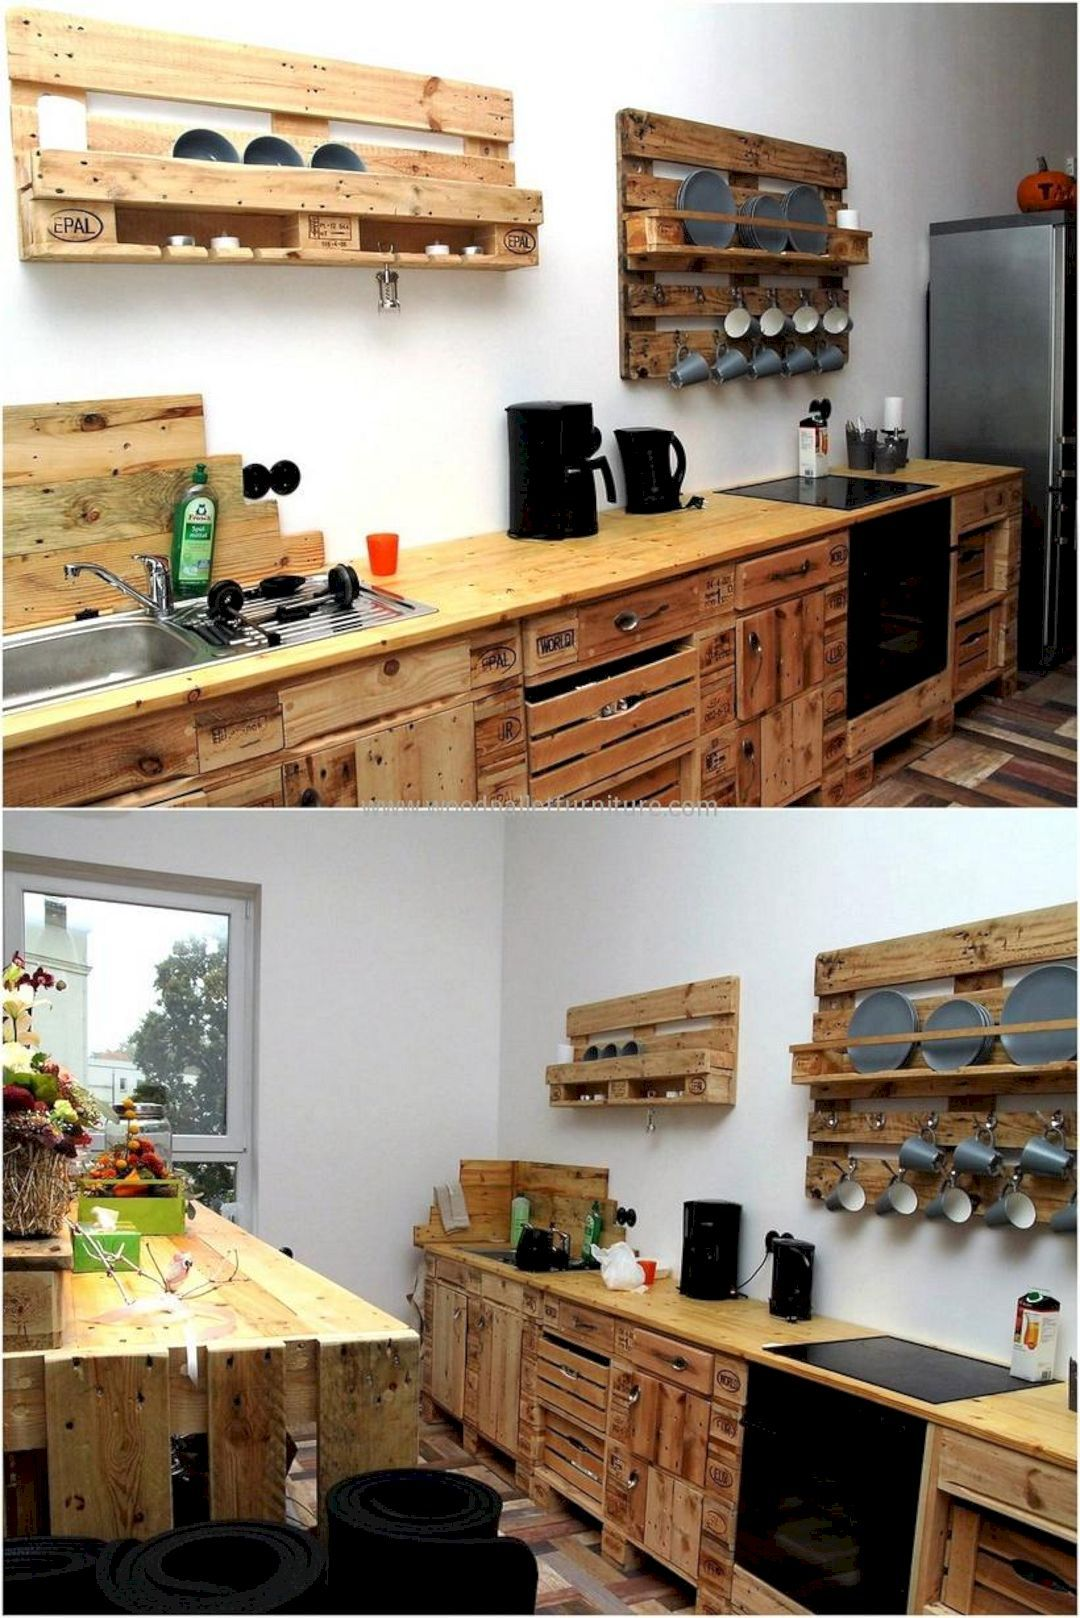 16 Stunning Diy Pallet Projects For Your Kitchen Pallet Kitchen